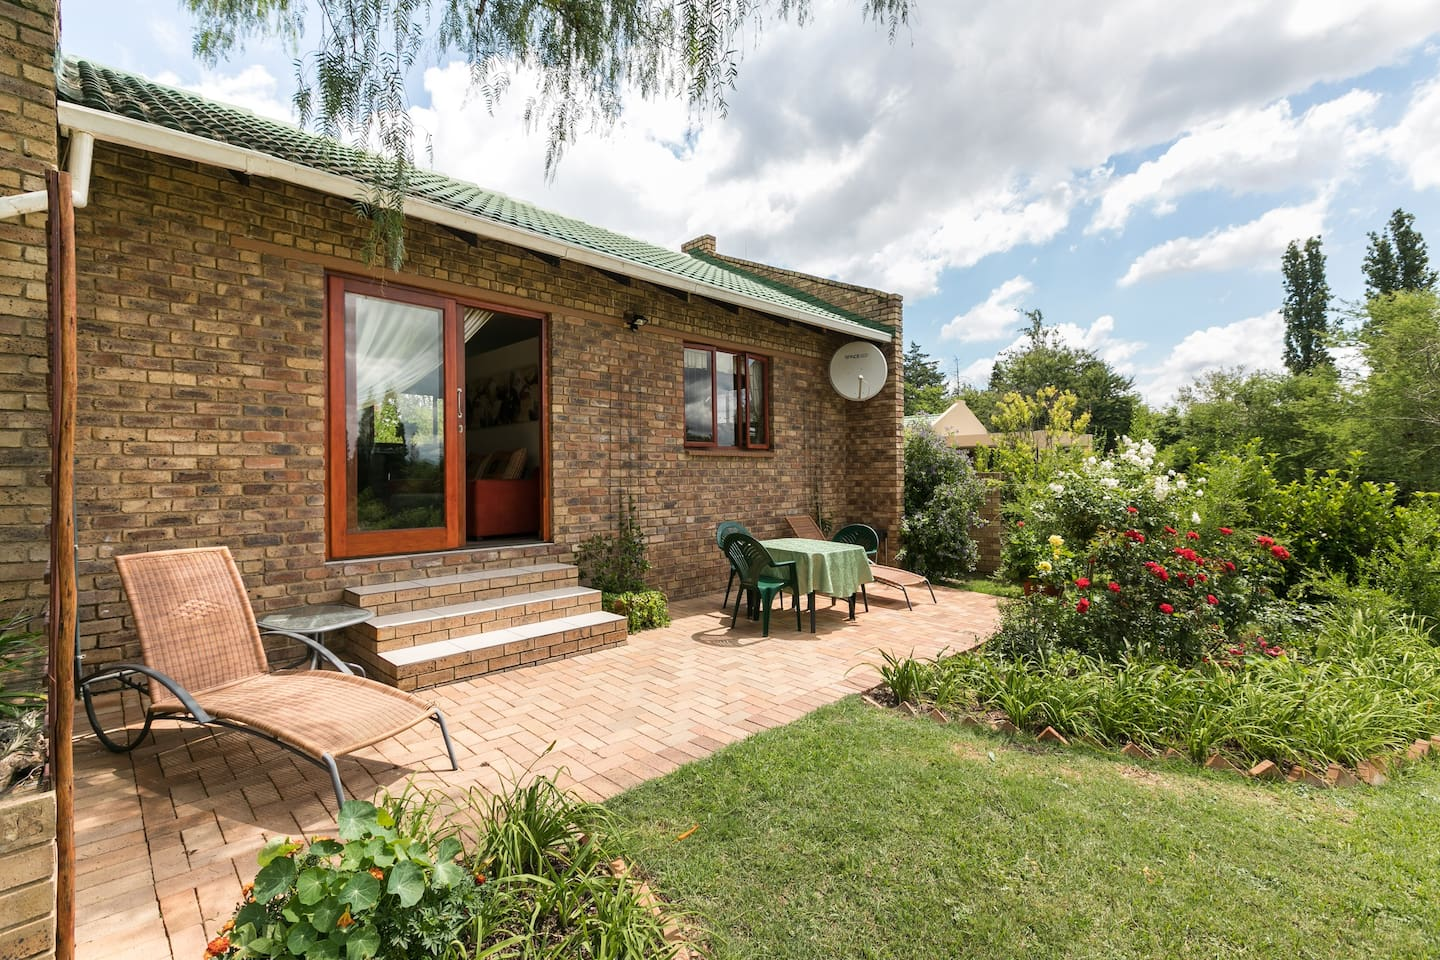 PRIVATE, Spacious Cottage Private patio for braai or relaxation.